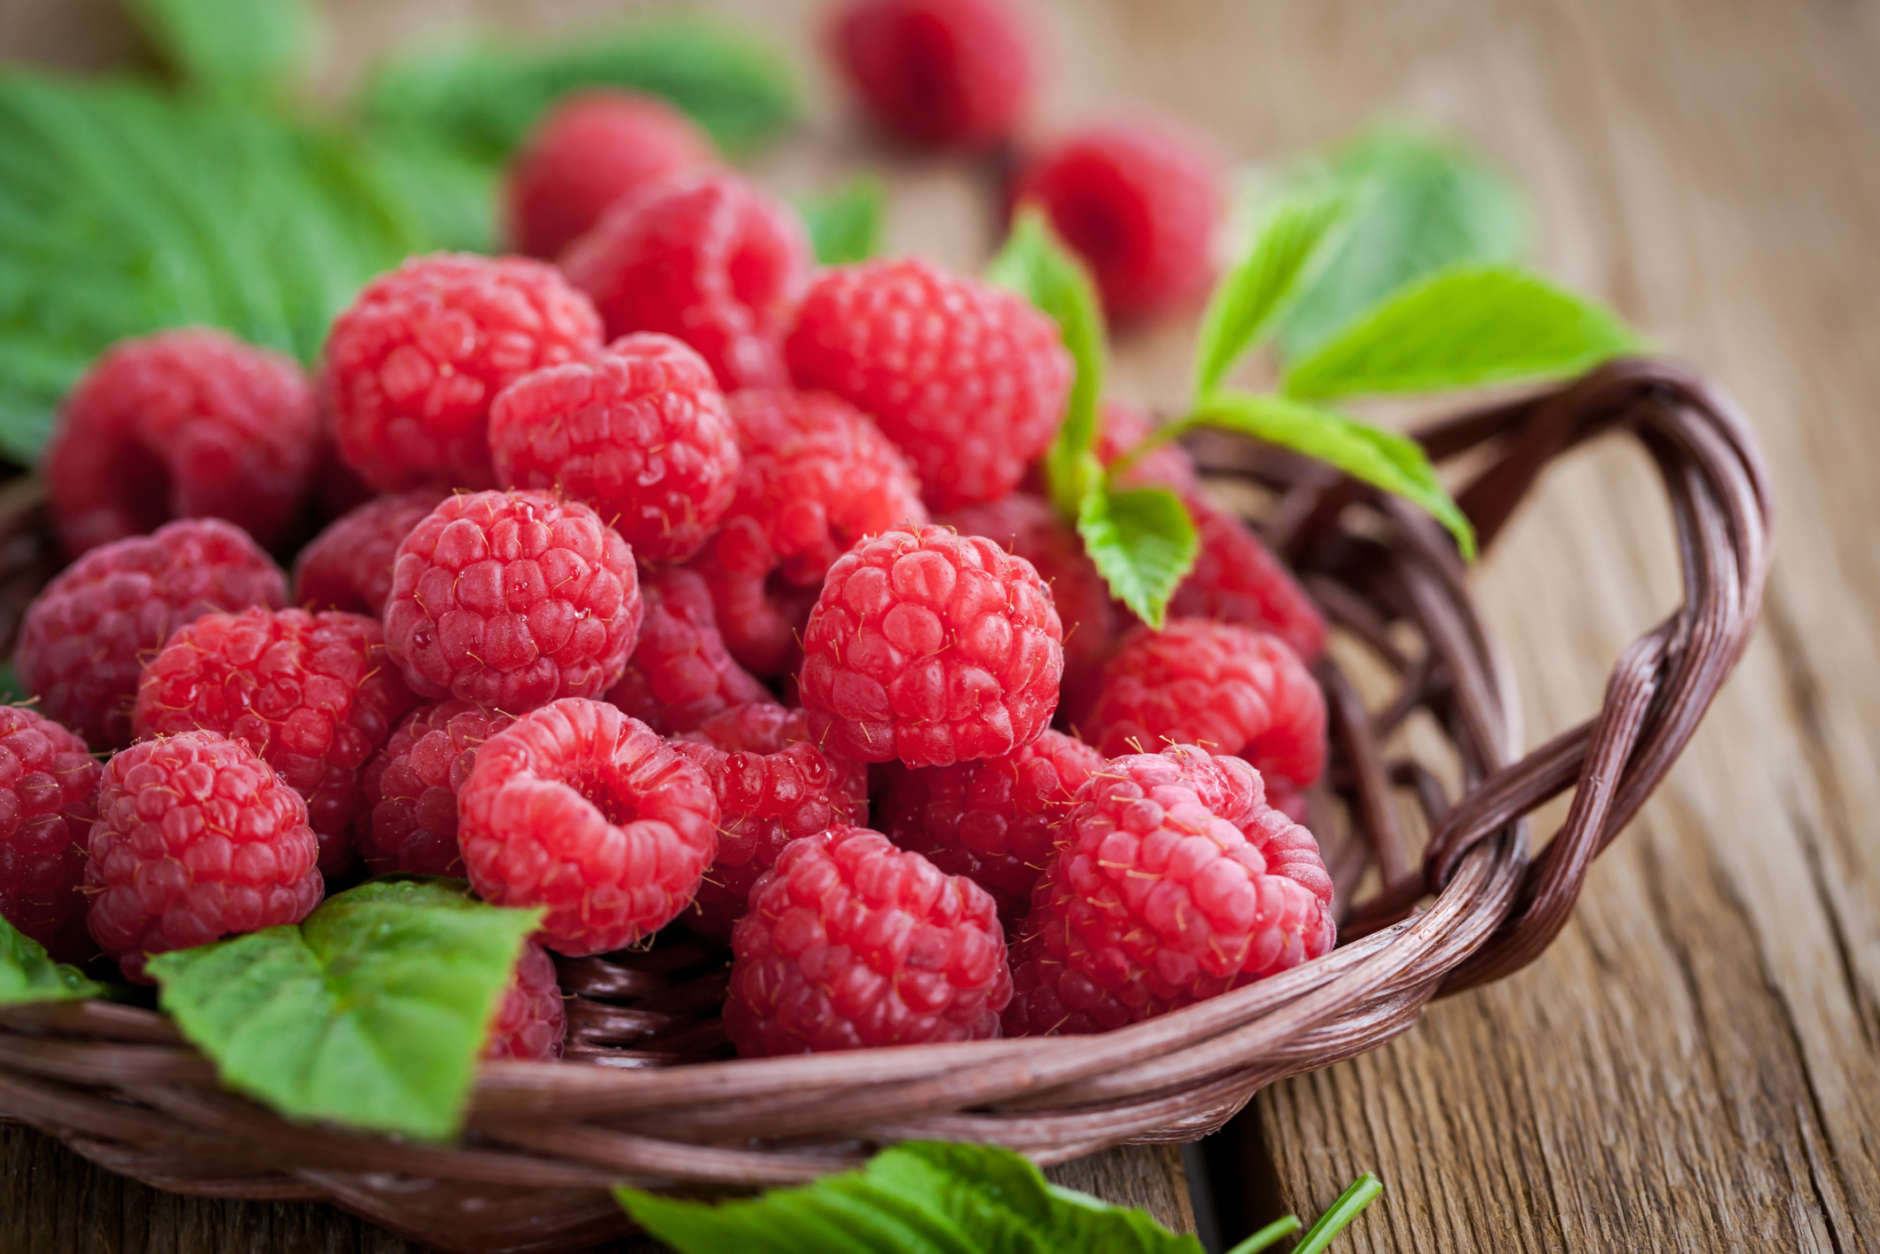 Healthy breakfast - Raspberries | LuckyFit